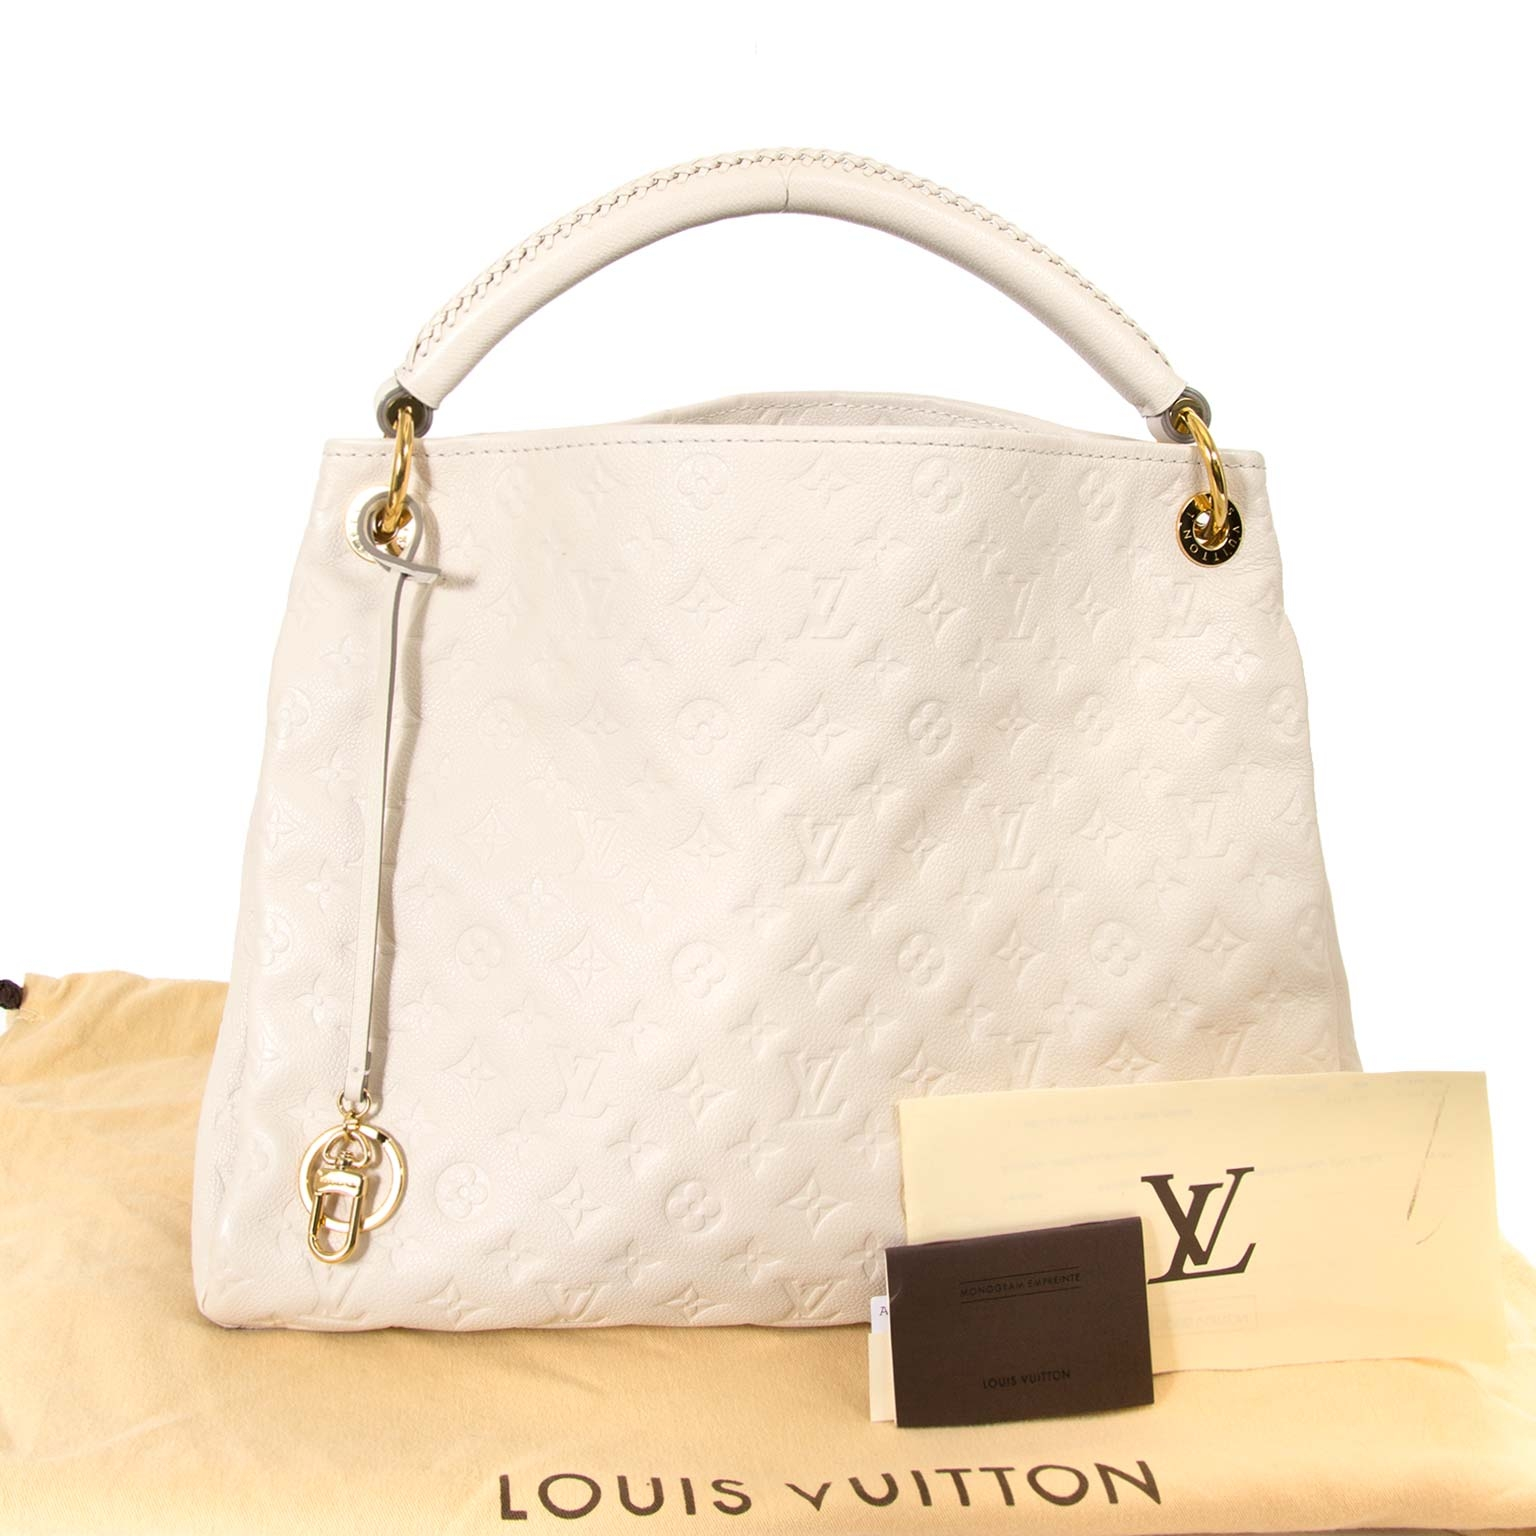 louis vuitton white cream artsy mm bag now for sale at labellov vintage fashion webshop belgium